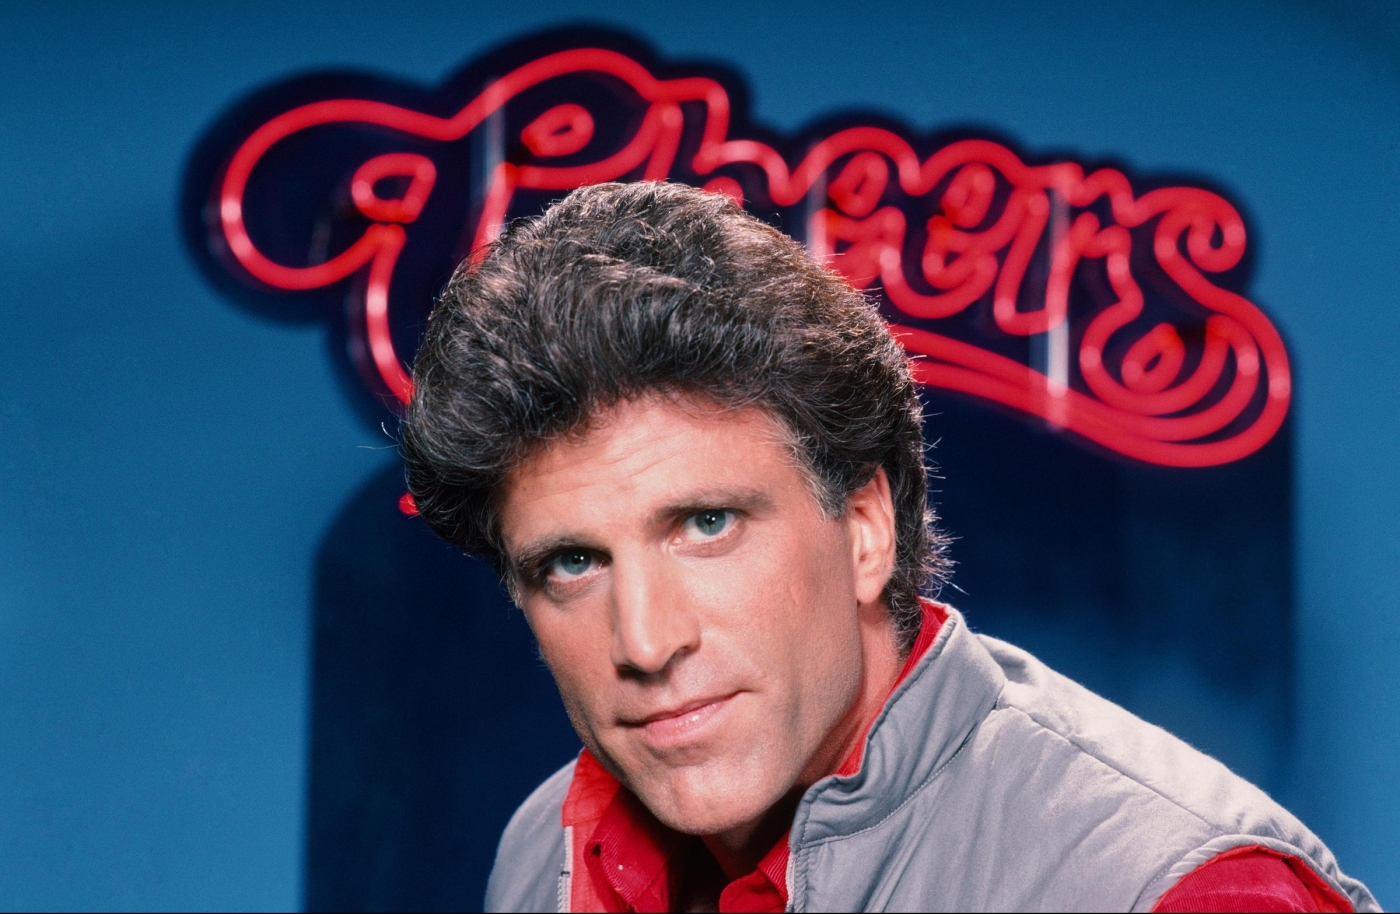 Ted Danson in his Cheers days.